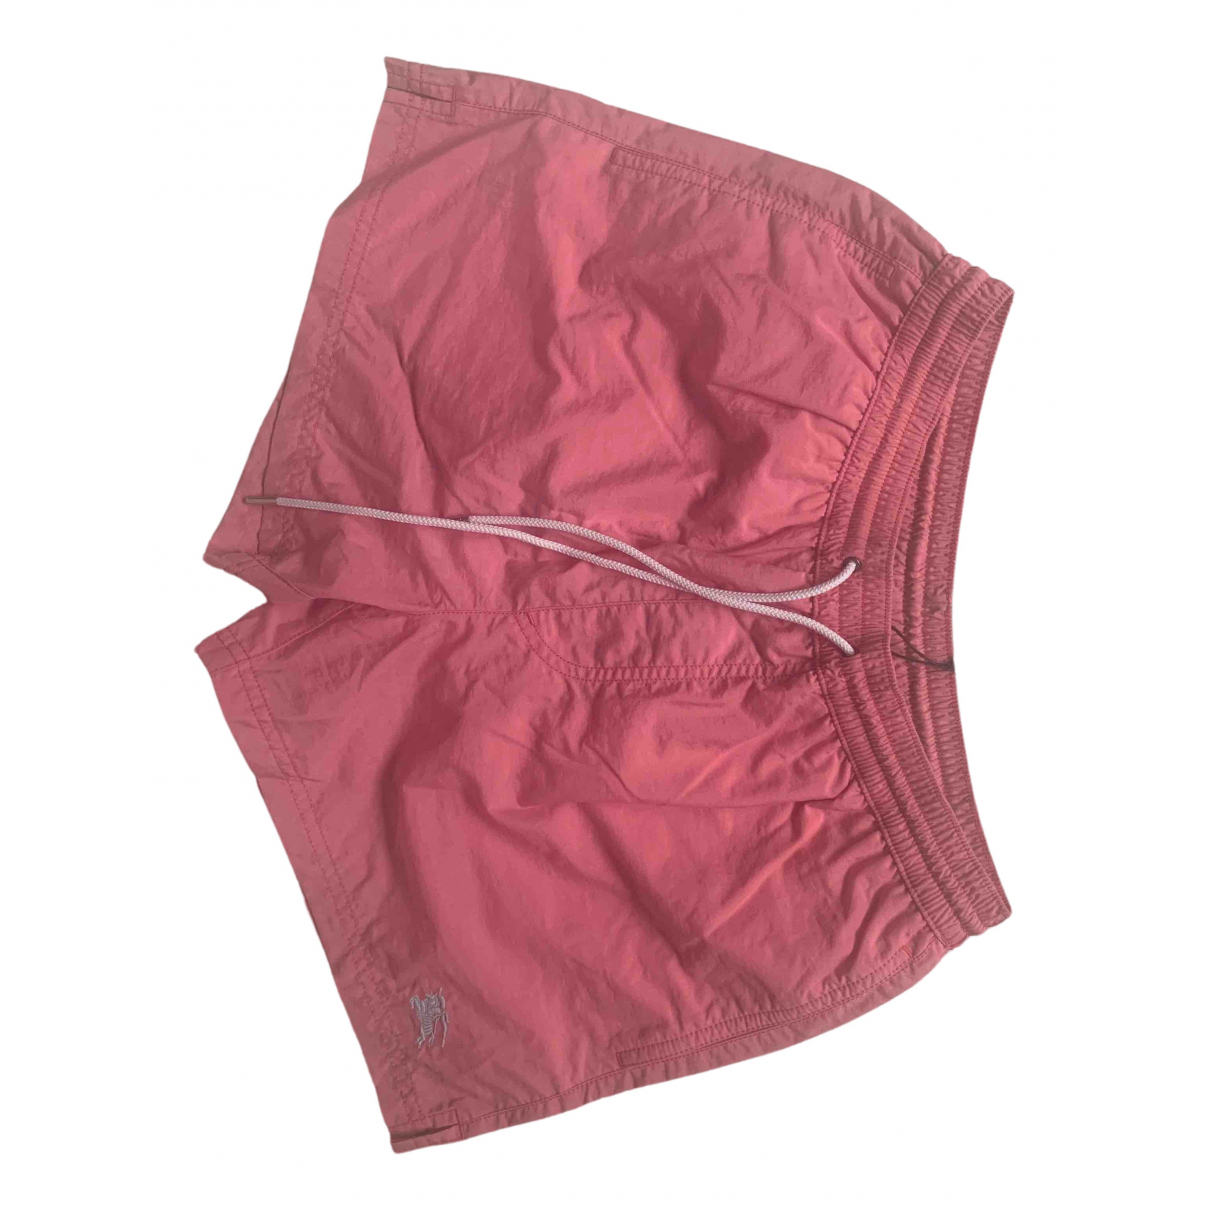 Burberry \N Badeanzug in  Rosa Polyester